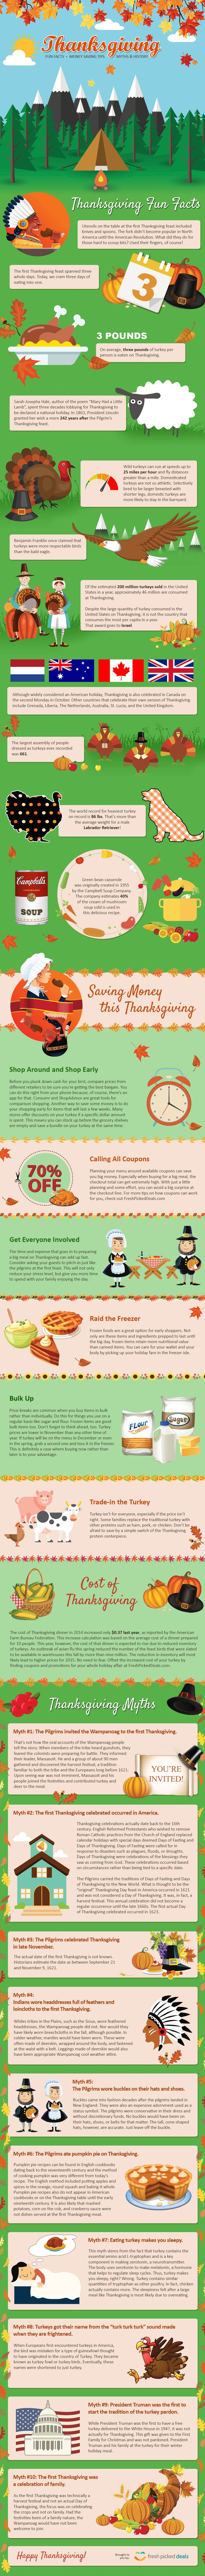 Thanksgiving Fun Facts and Money Saving Tips #infographic #ThanksGiving